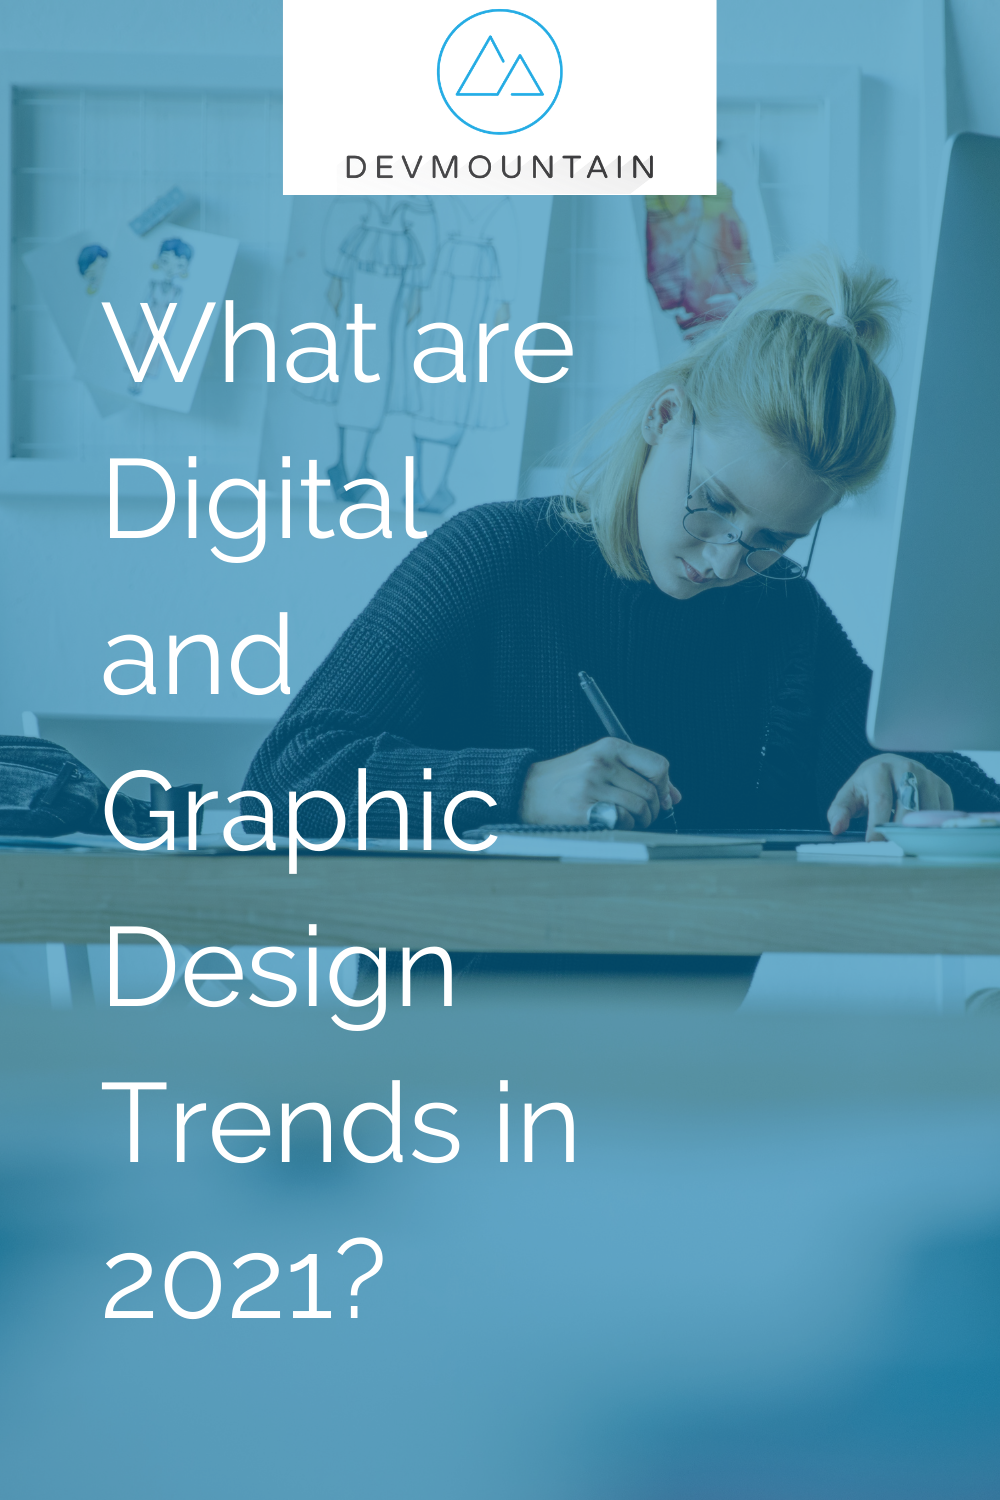 What are Digital and Graphic Design Trends in 2021?